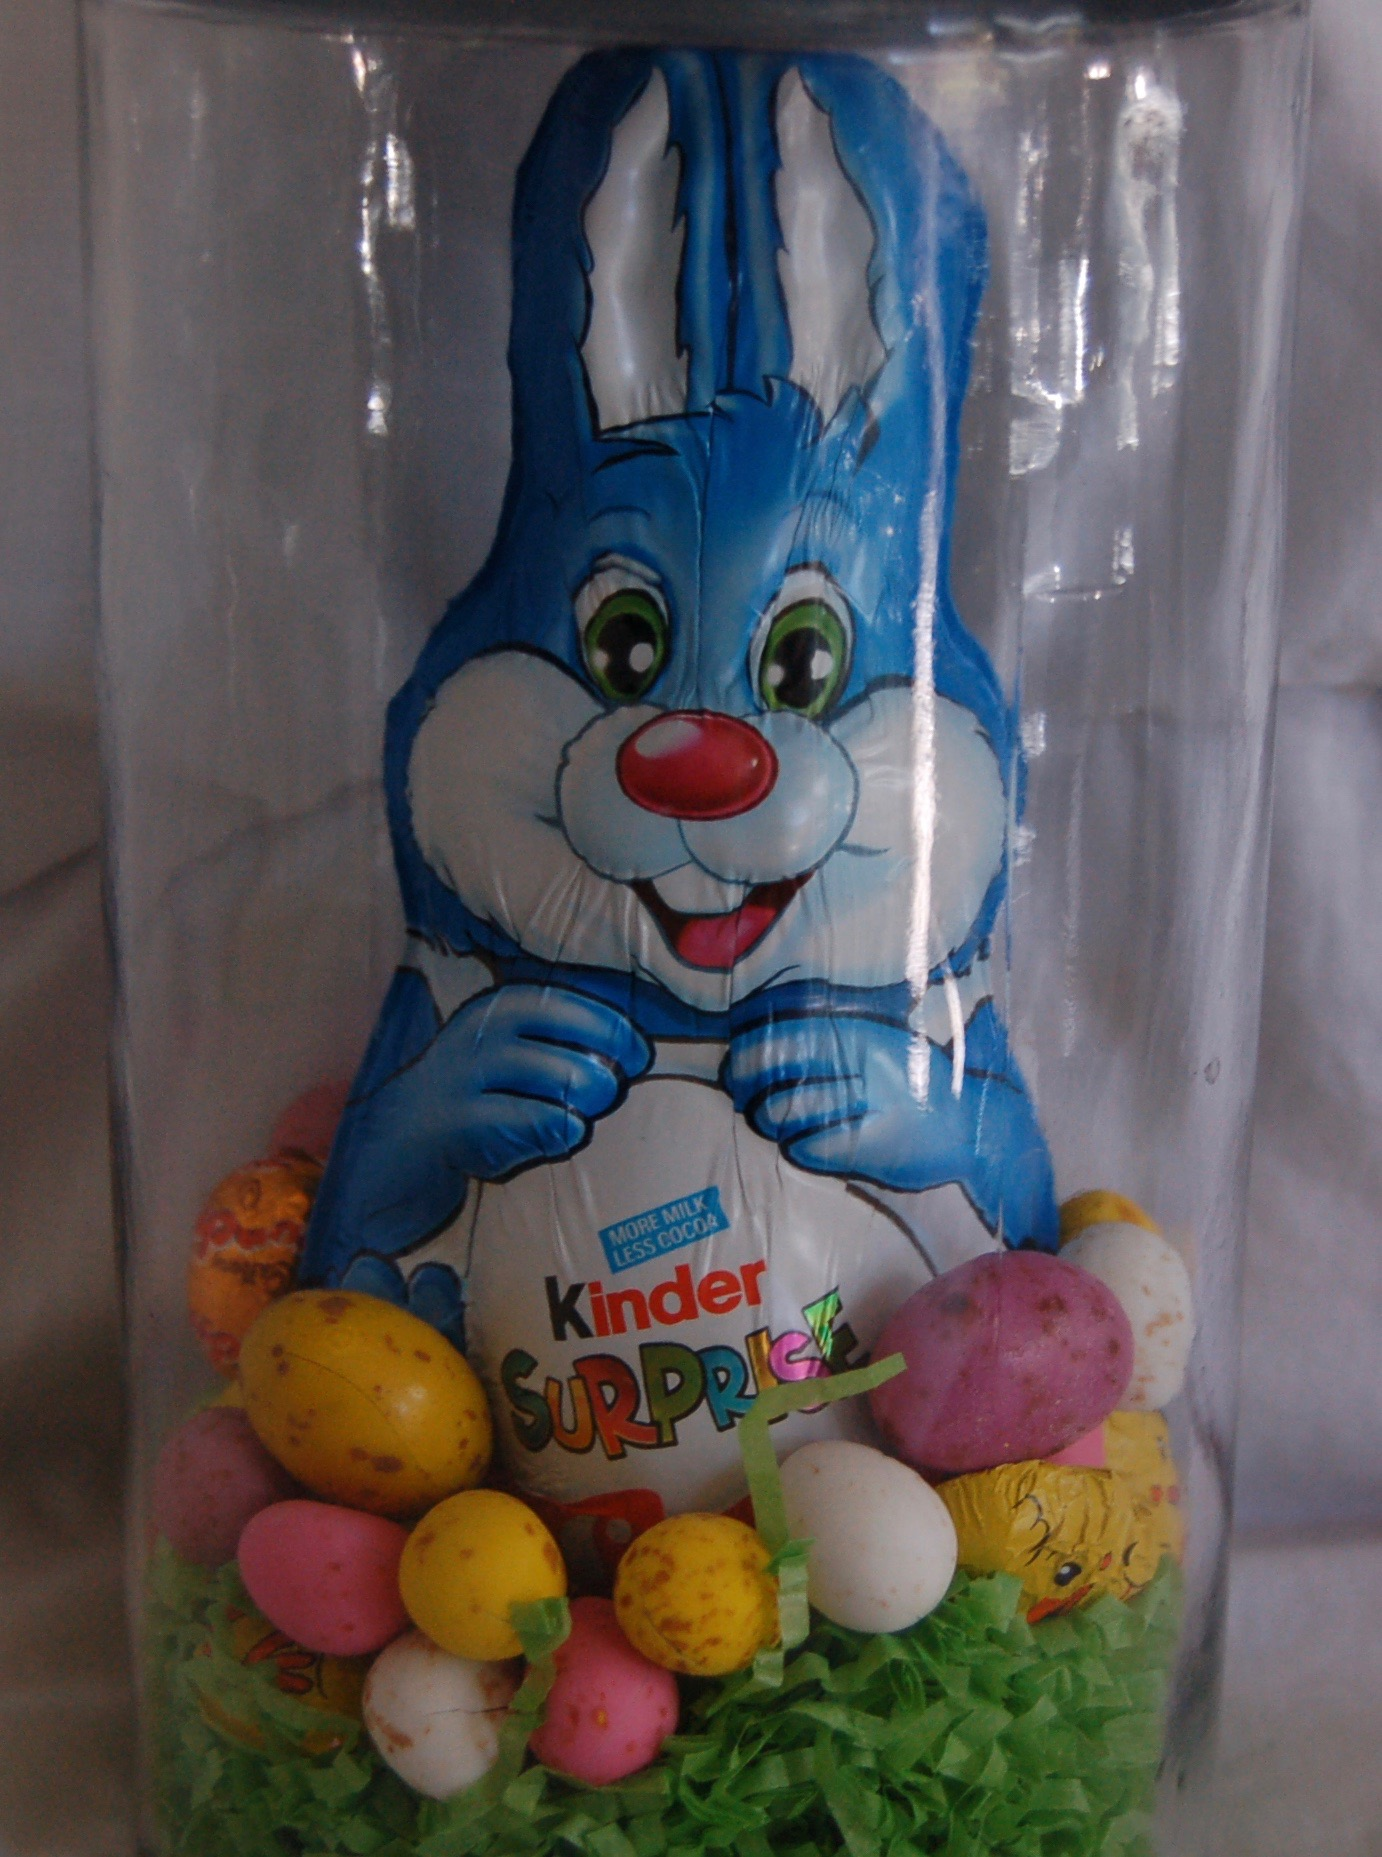 Easter bunny gift jar sweet saffron spice easter bunny gift jar negle Image collections